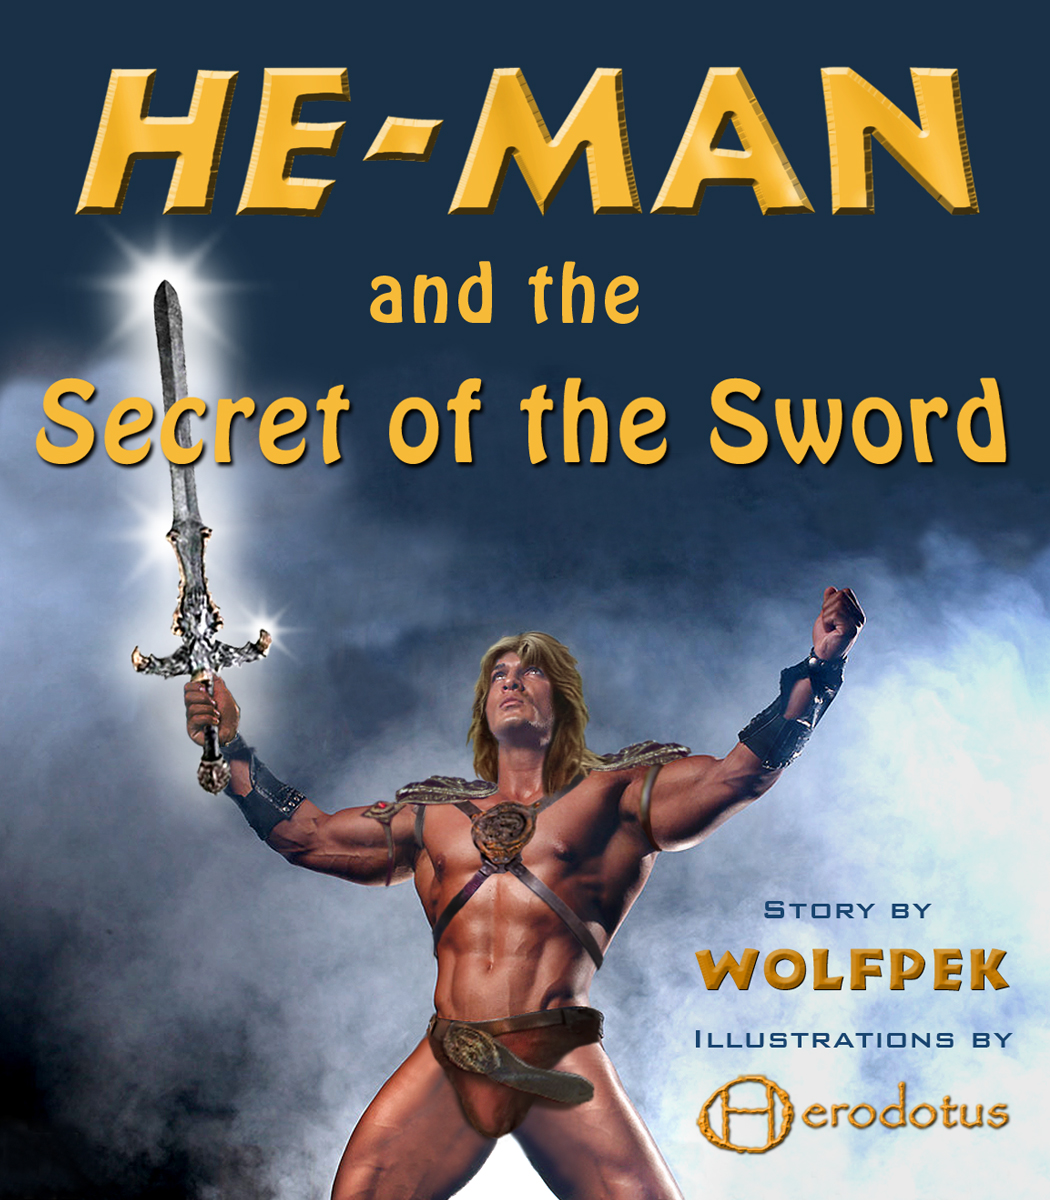 He-Man and the Secret of the Sword